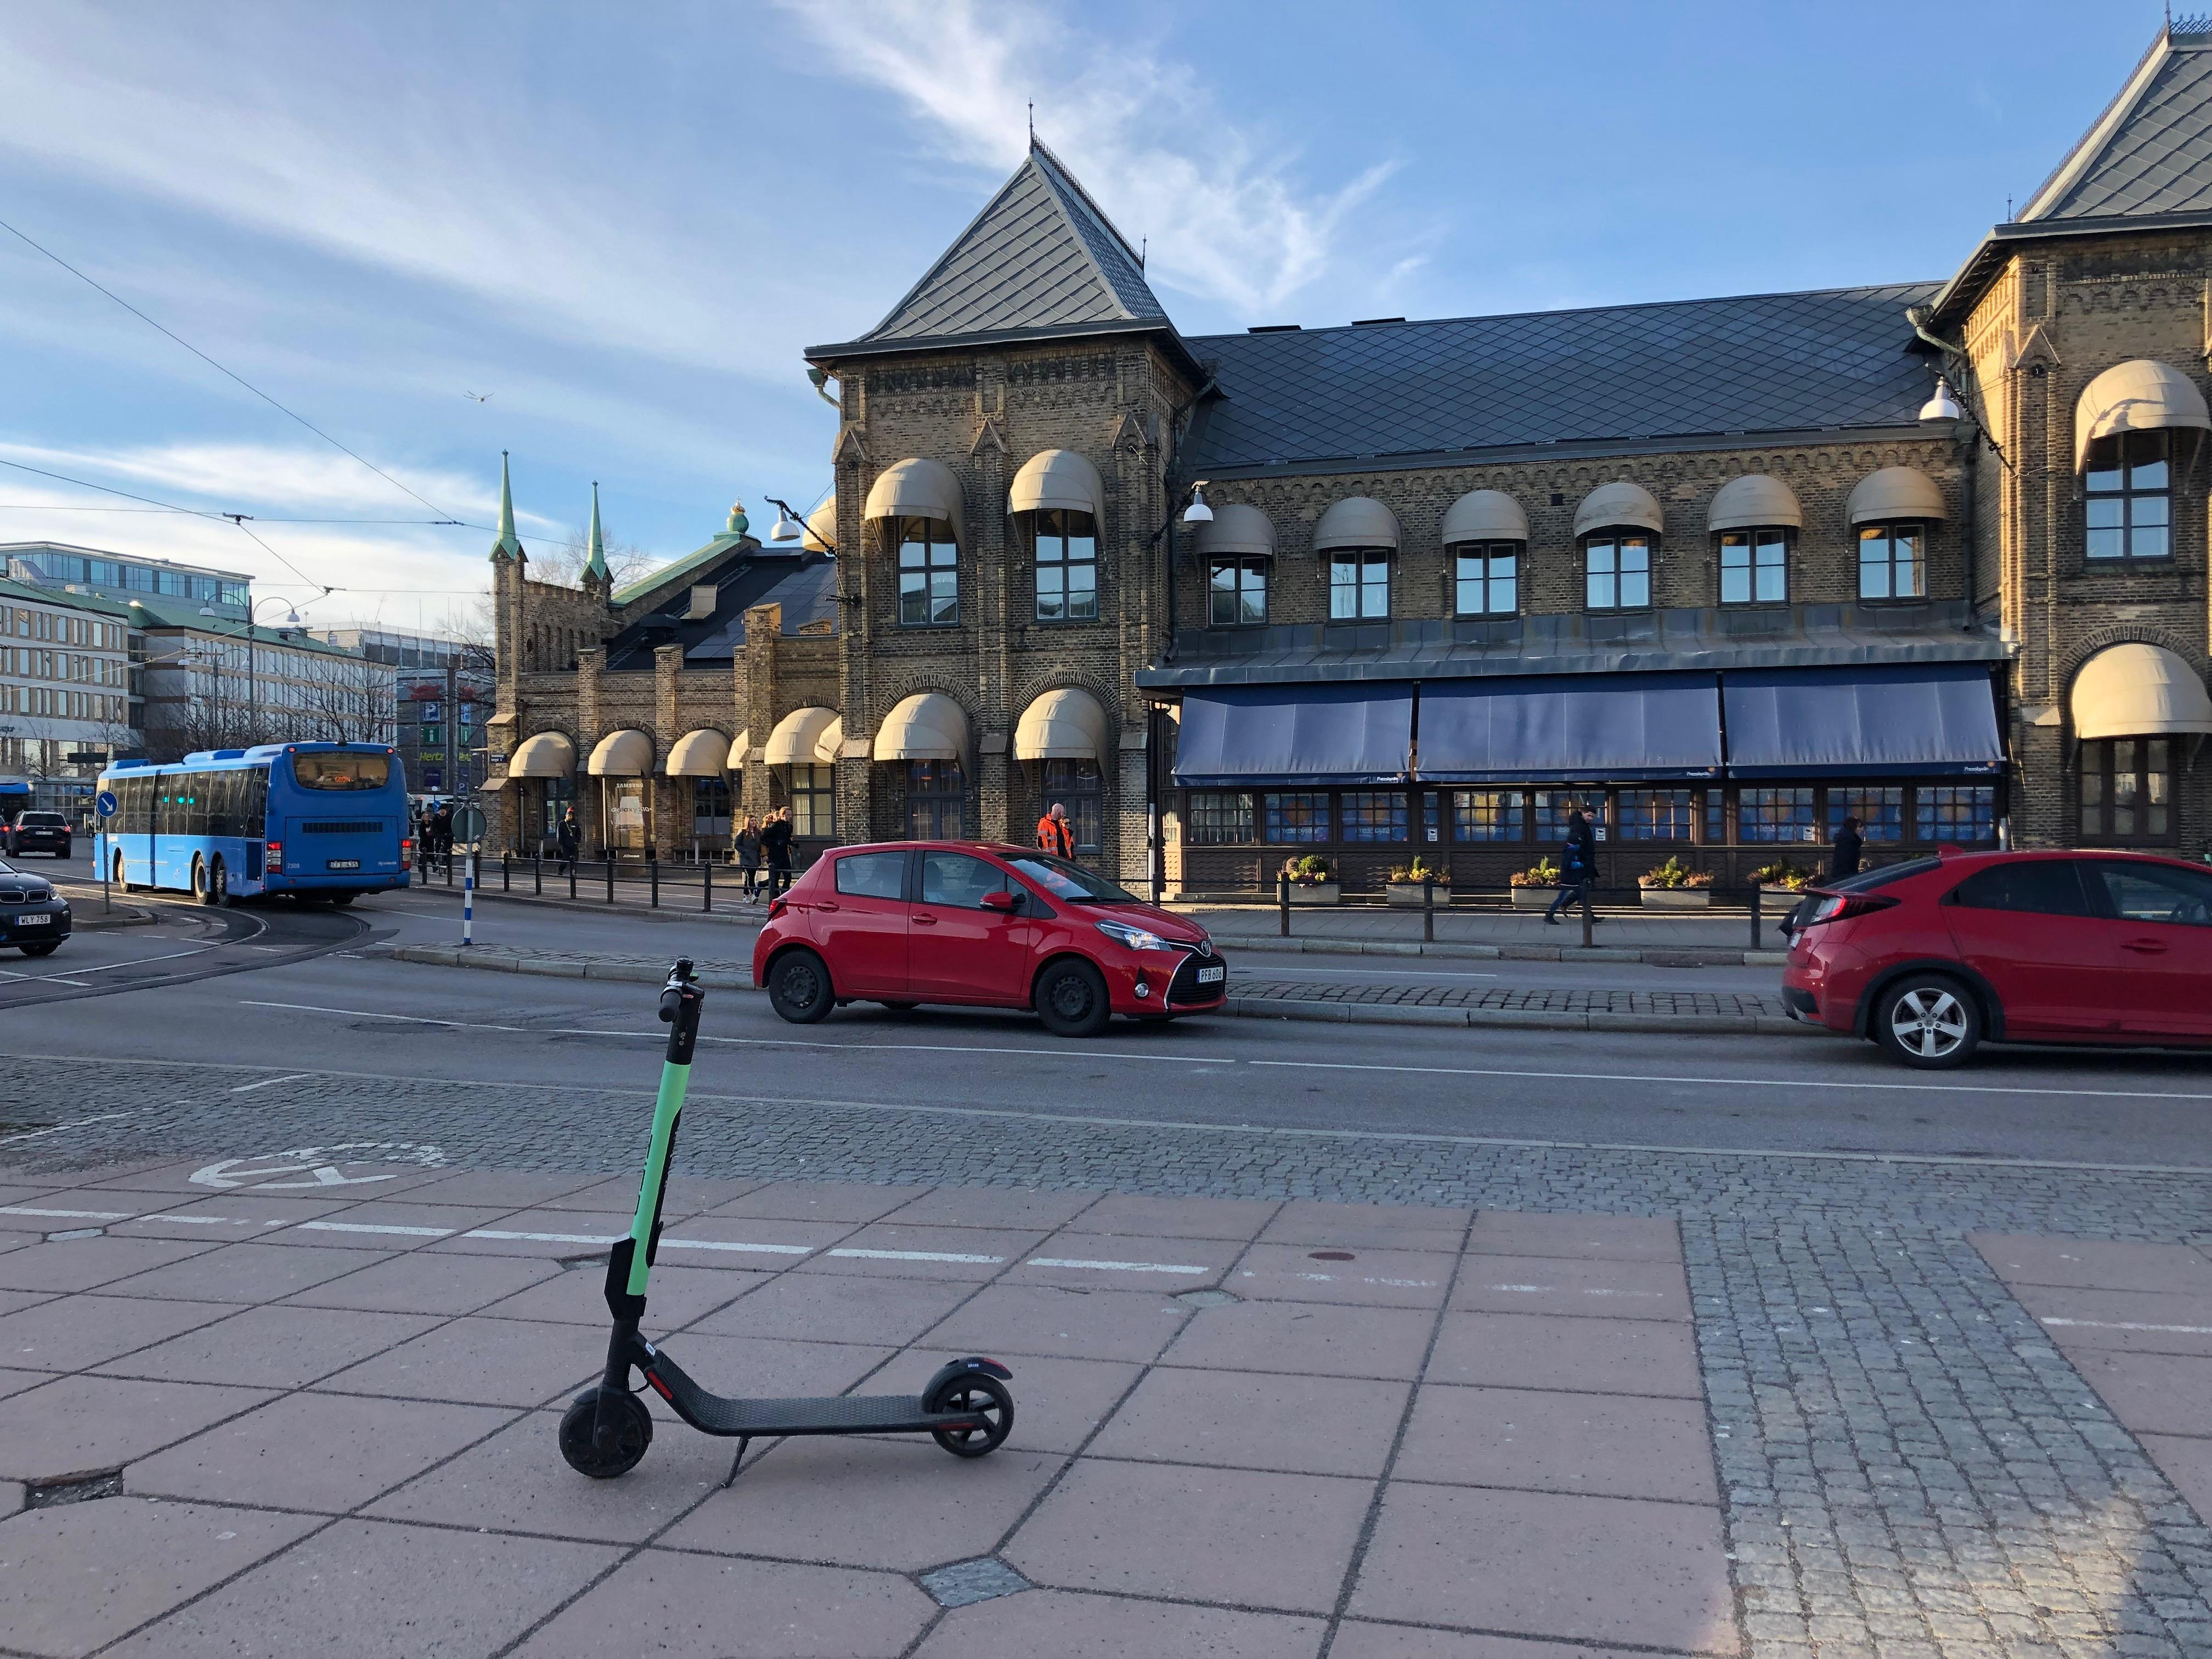 smart mobility consumer cleantech scooter